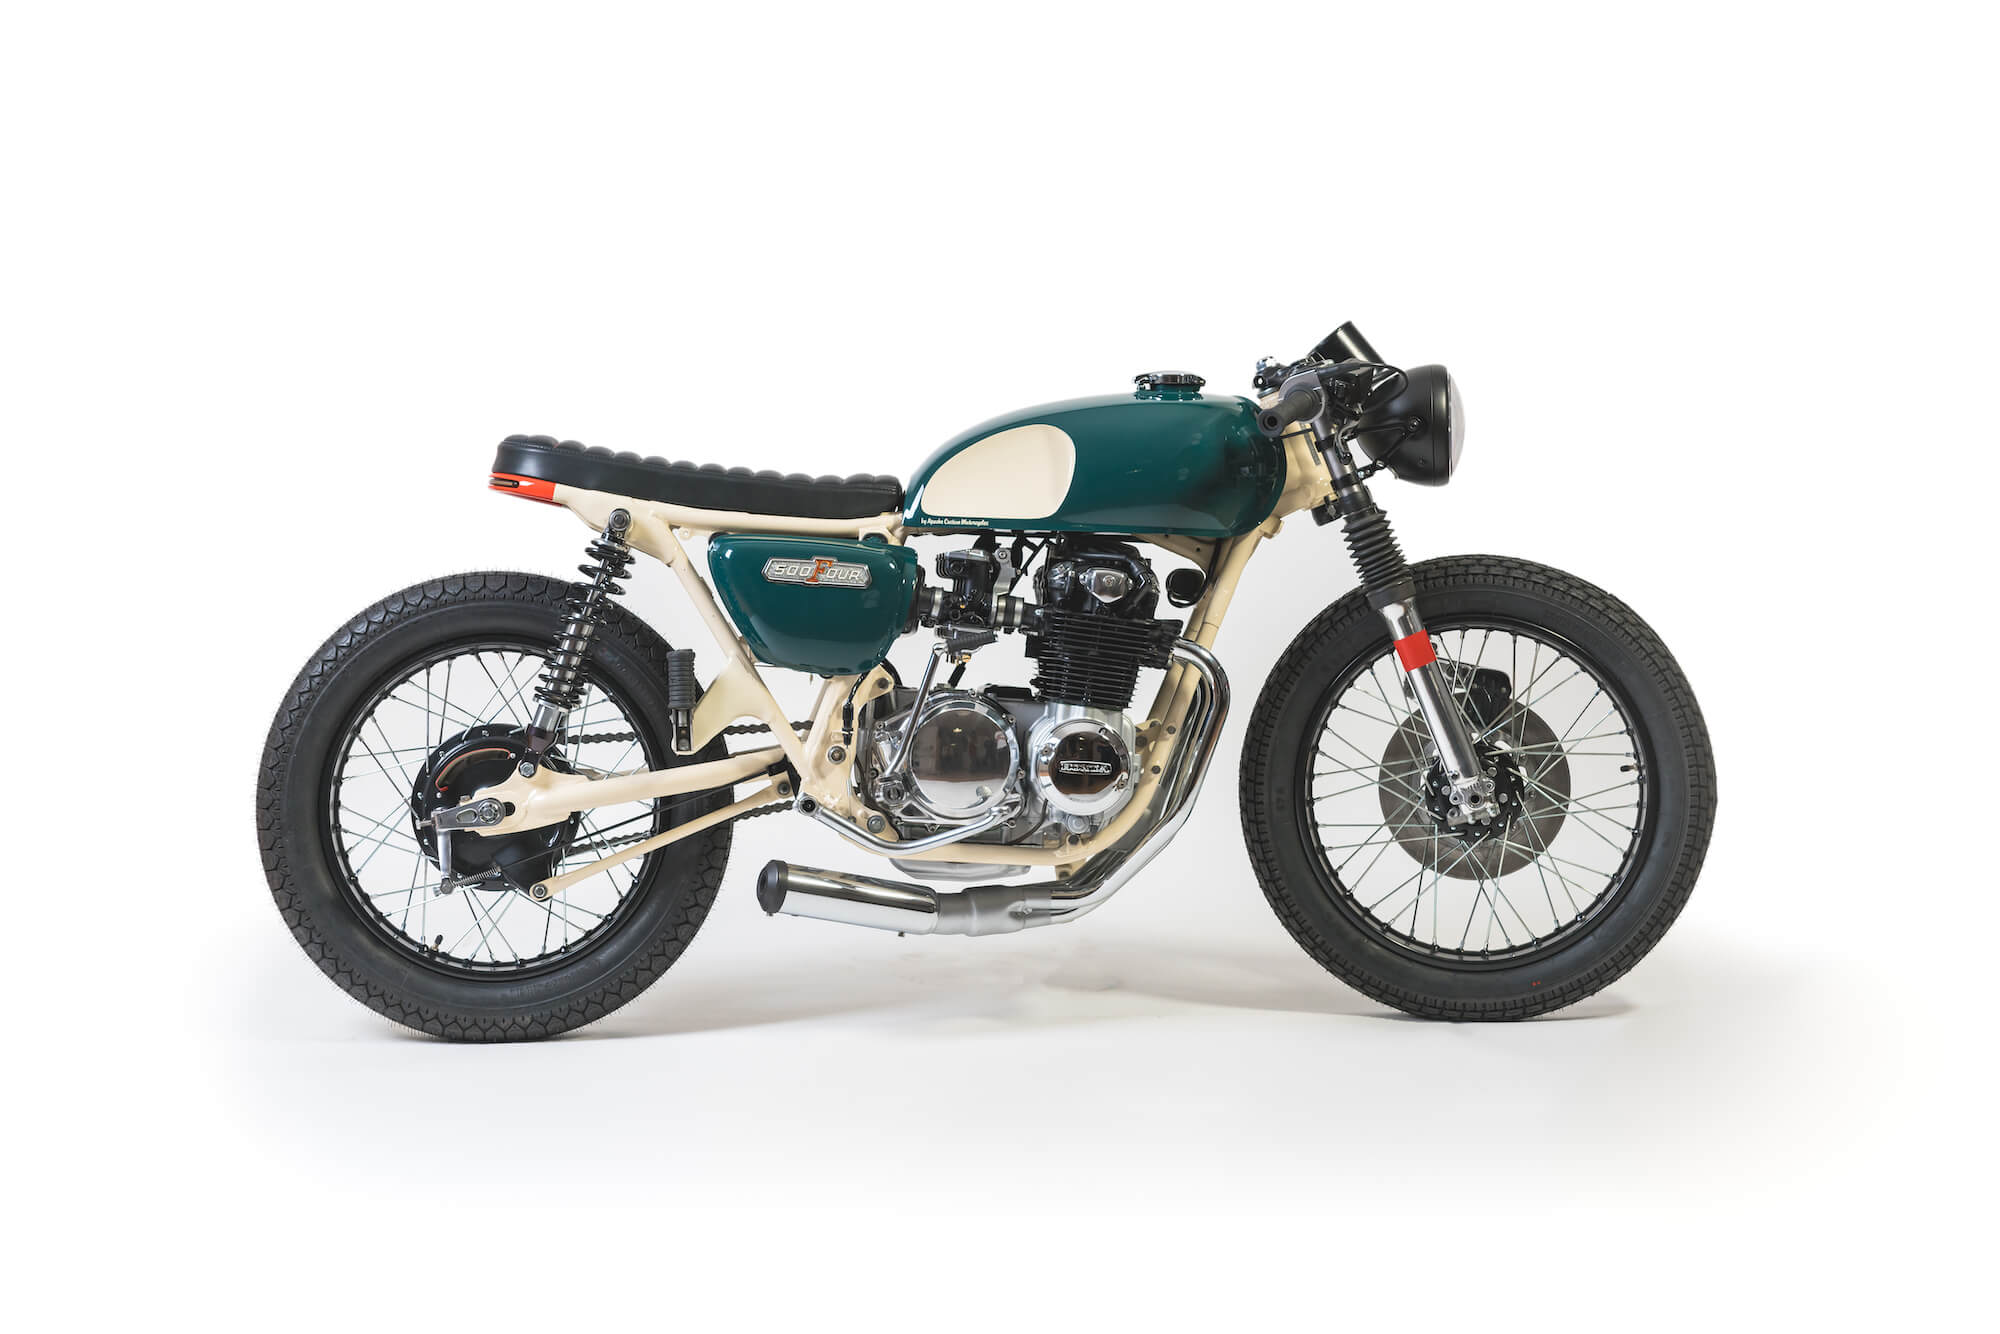 Apache Custom Motorcycles Honda CB 500 Four 1973